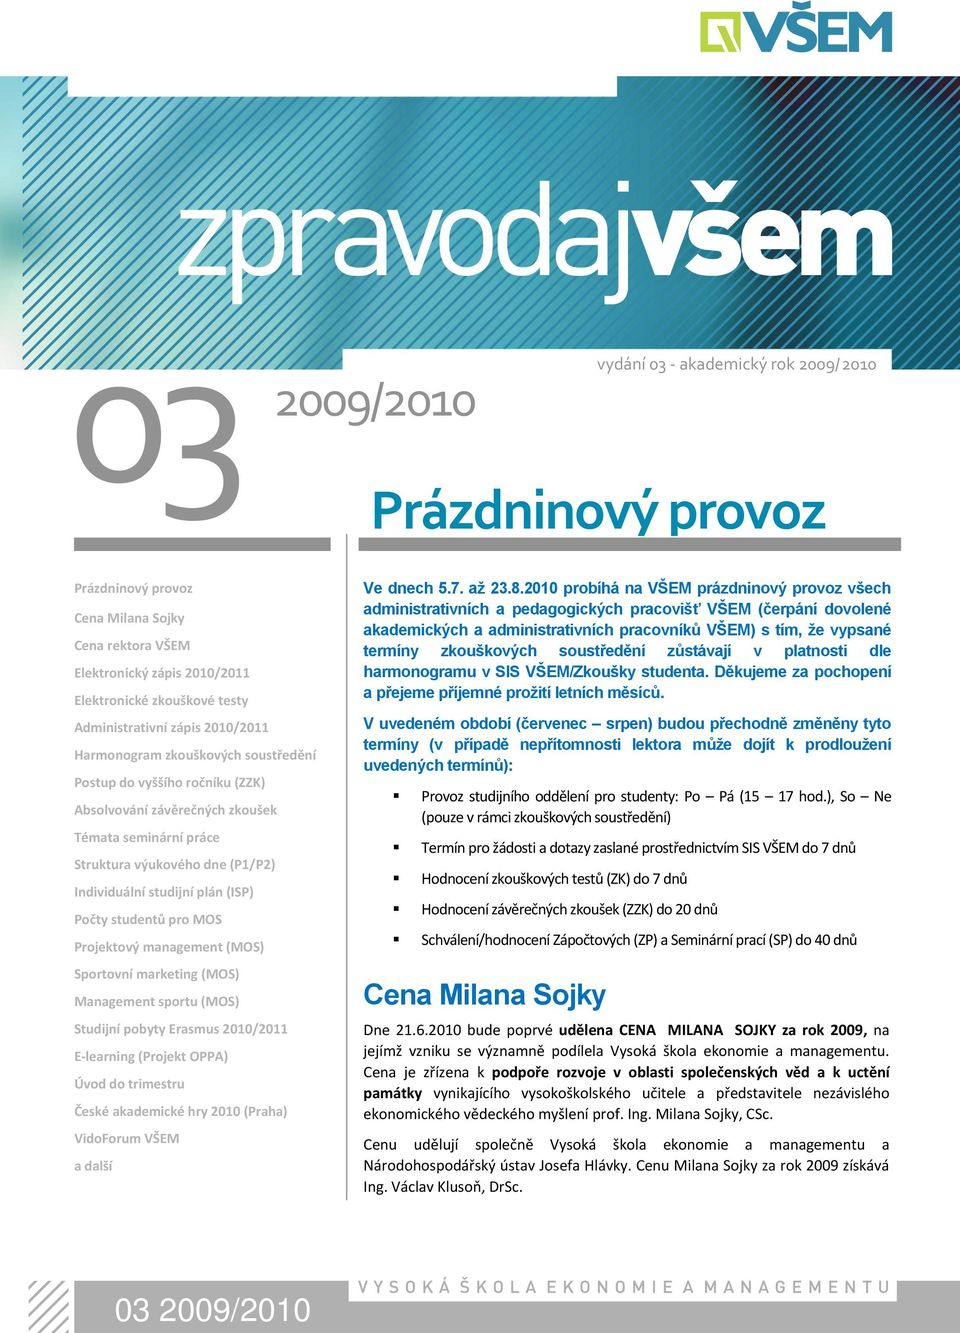 marketing (MOS) Management sportu (MOS) Studijní pobyty Erasmus 2010/2011 E-learning (Projekt OPPA) Úvod do trimestru České akademické hry 2010 (Praha) VidoForum VŠEM a další Prázdninový provoz